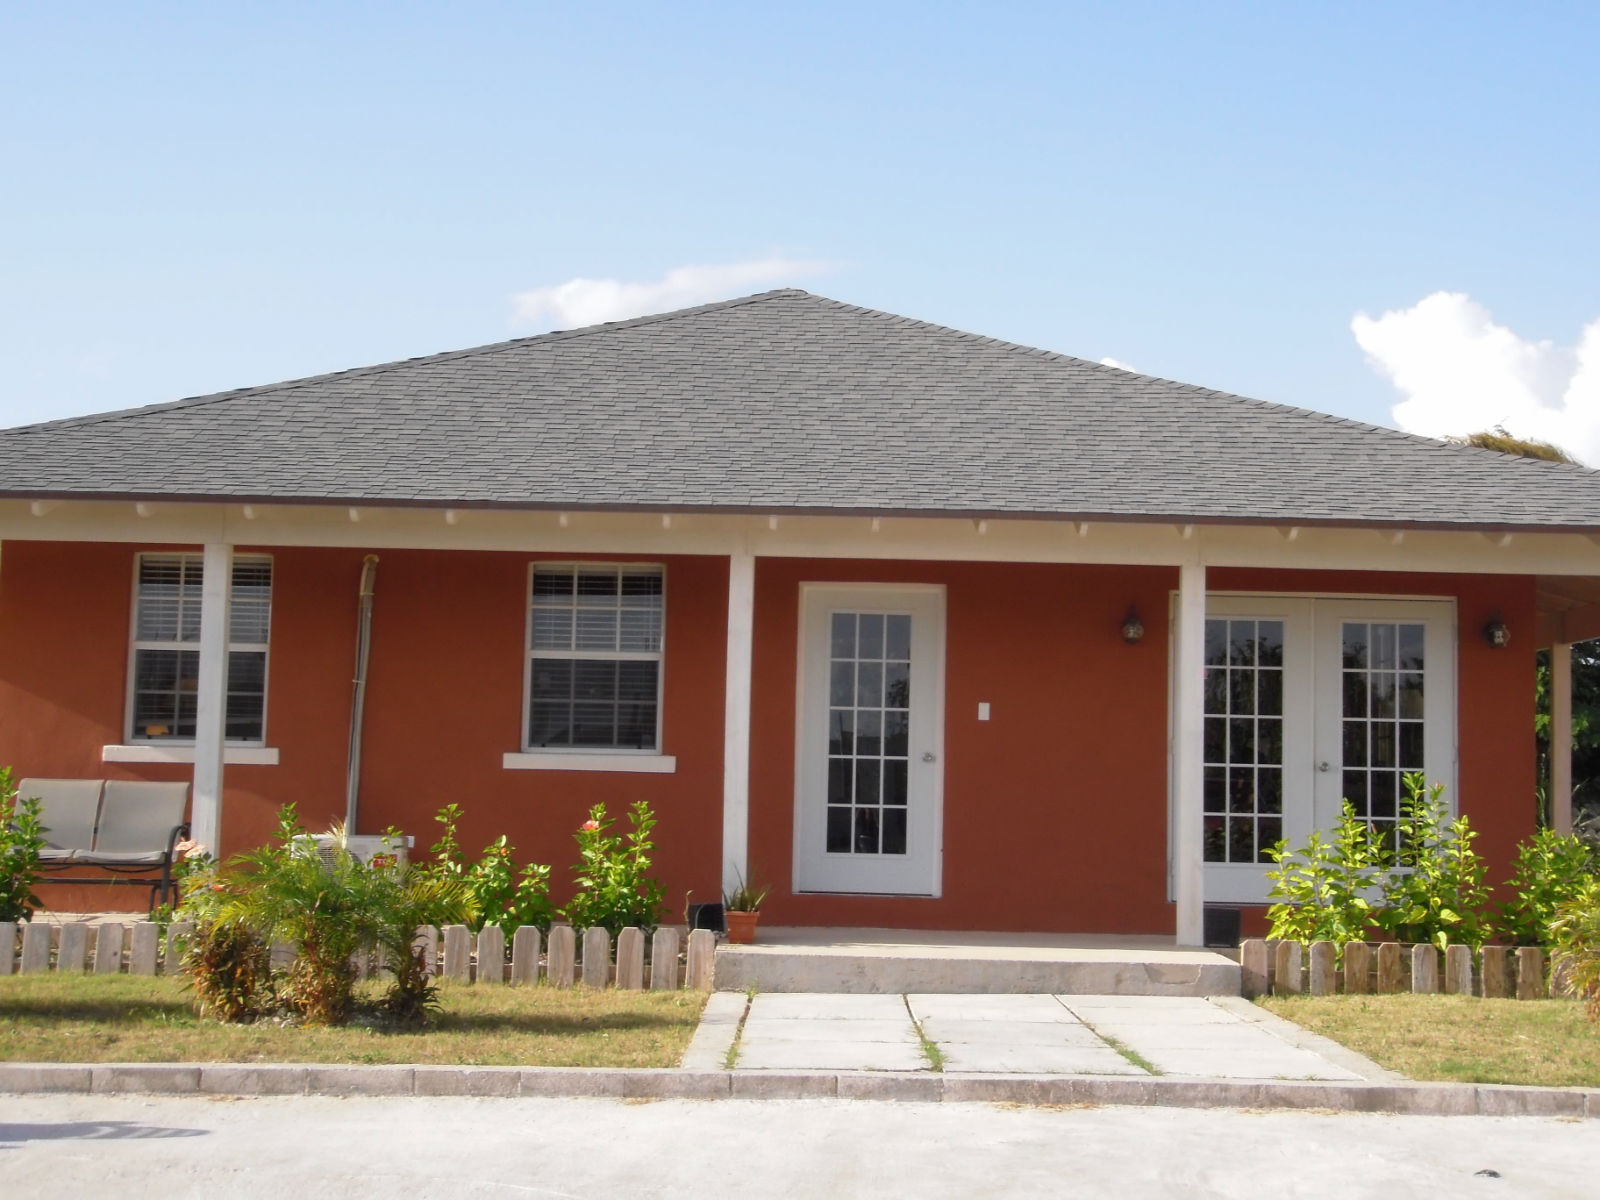 Single Family Home for Sale at Family home with wrap around verandah in gated community West Winds, West Bay Street, Nassau And Paradise Island Bahamas